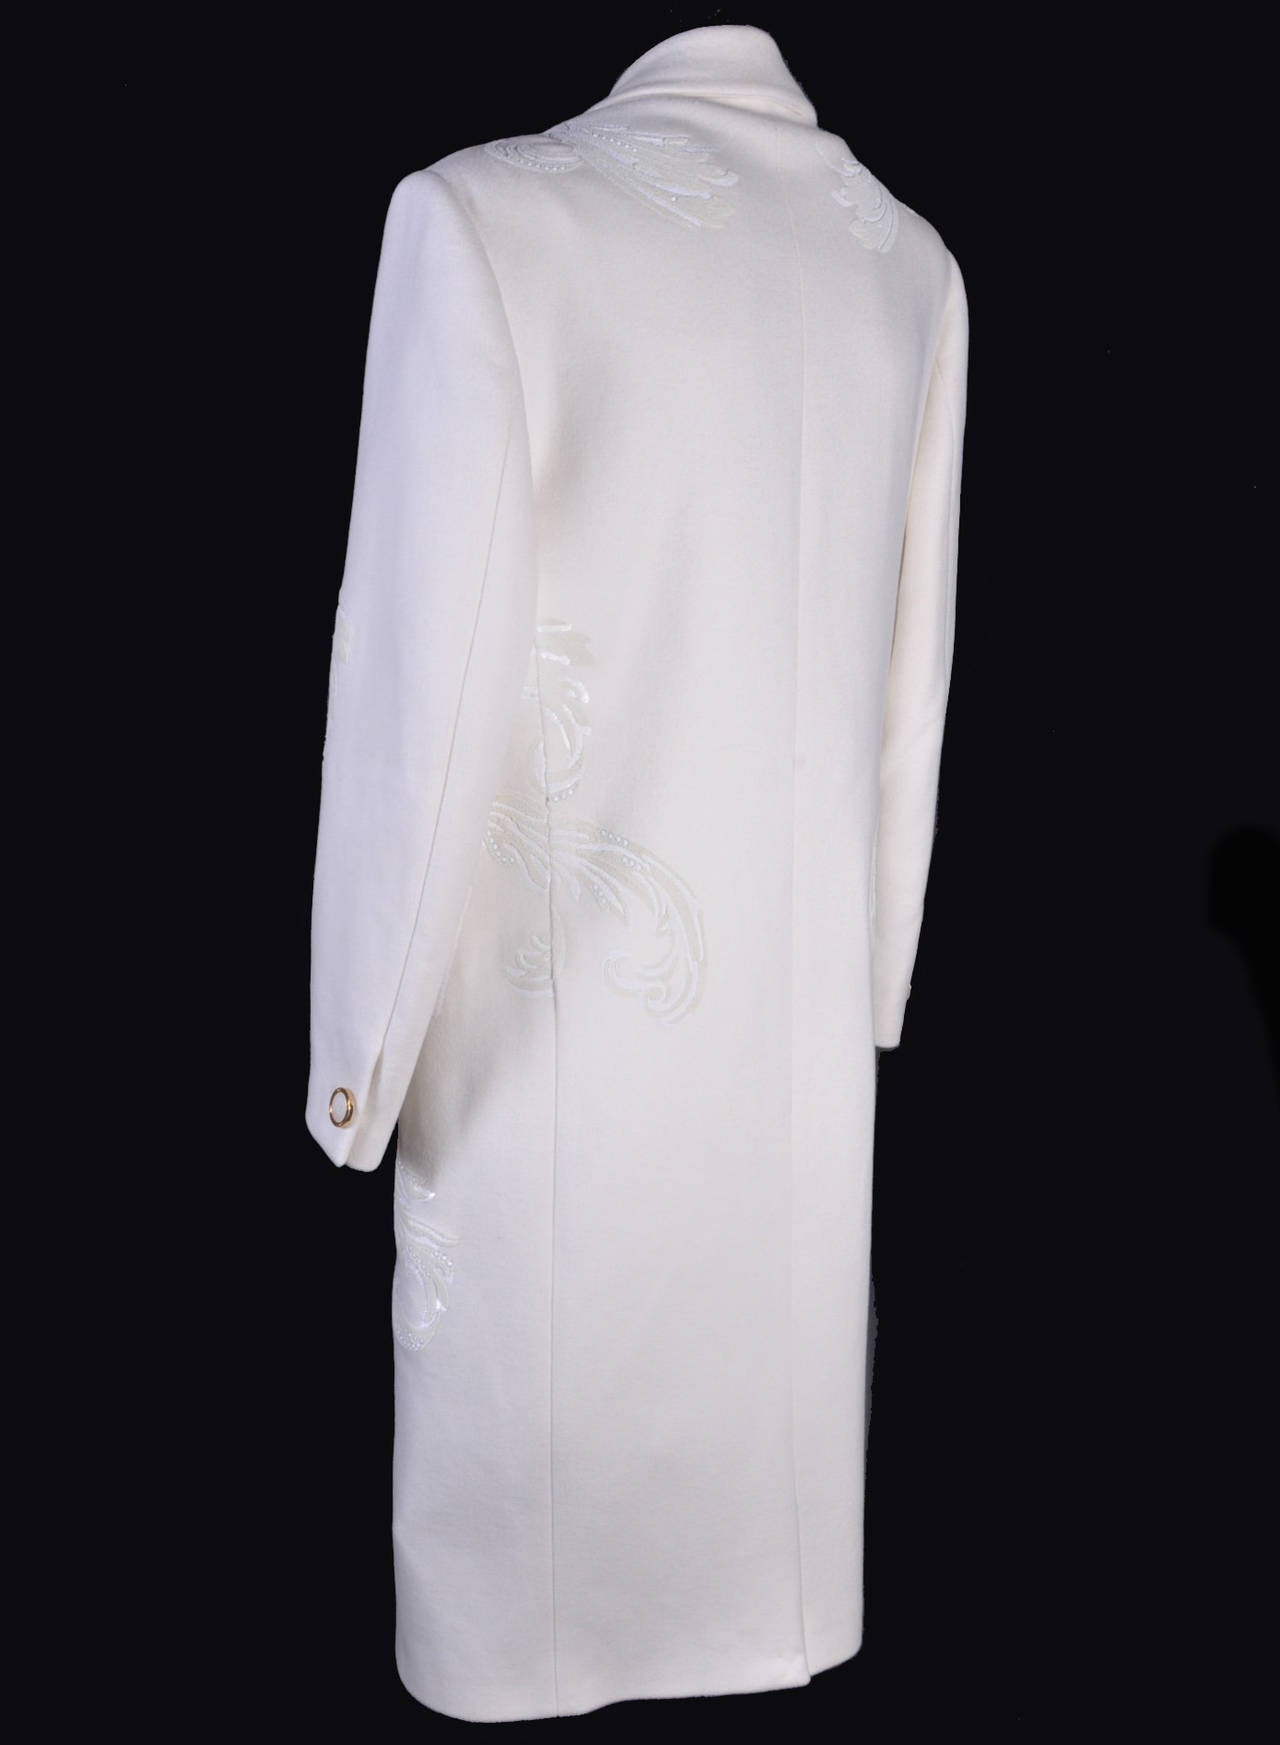 New VERSACE WHITE 100% CASHMERE EMBELLISHED MEN's COAT For Sale 2